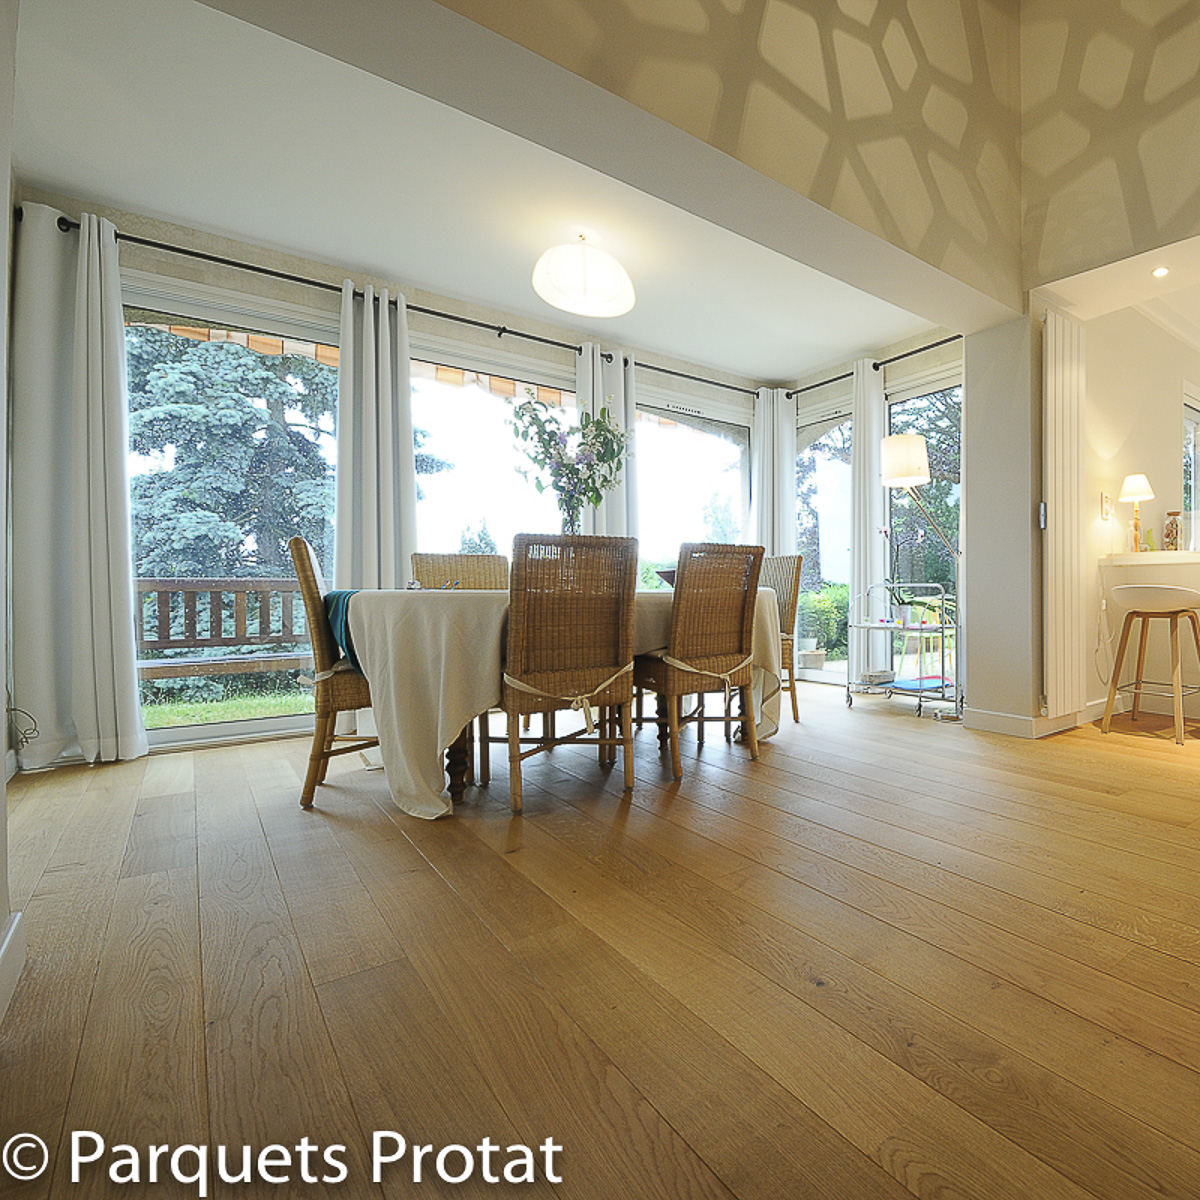 100 Incroyable Suggestions Sens De Pose Du Parquet